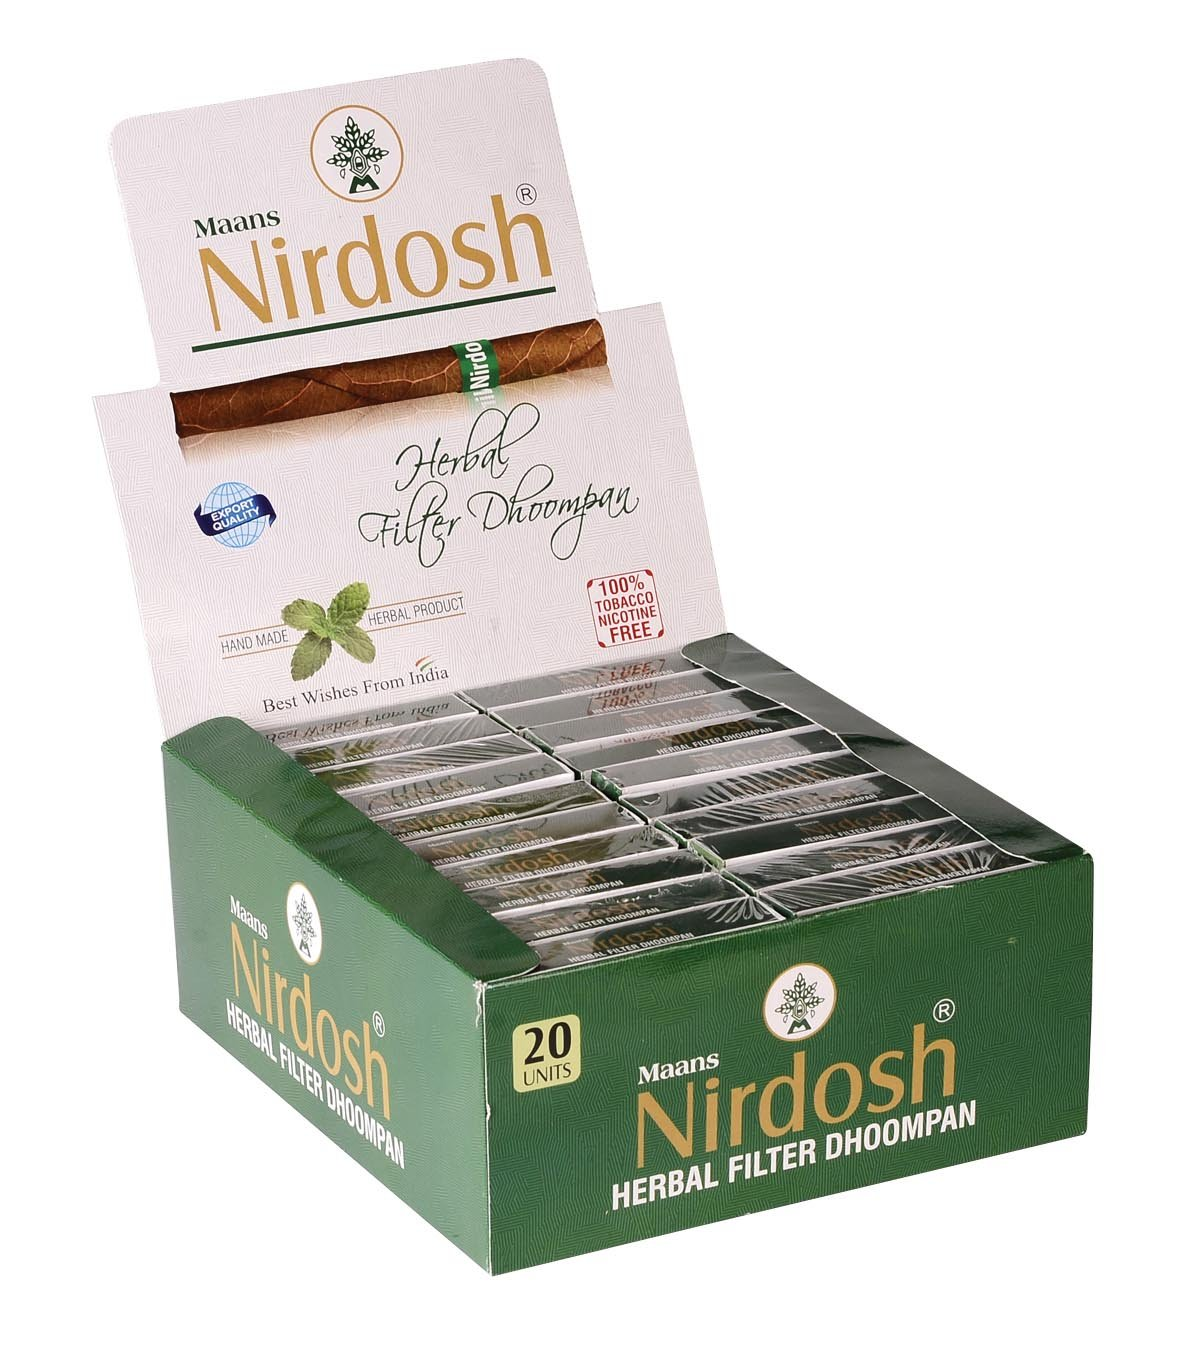 NIRDOSH Herbal No Nicotine & Tobacco Cigarettes[With Filter] - 20 Packs(20 Cigarettes Per Pack) by Nirdosh